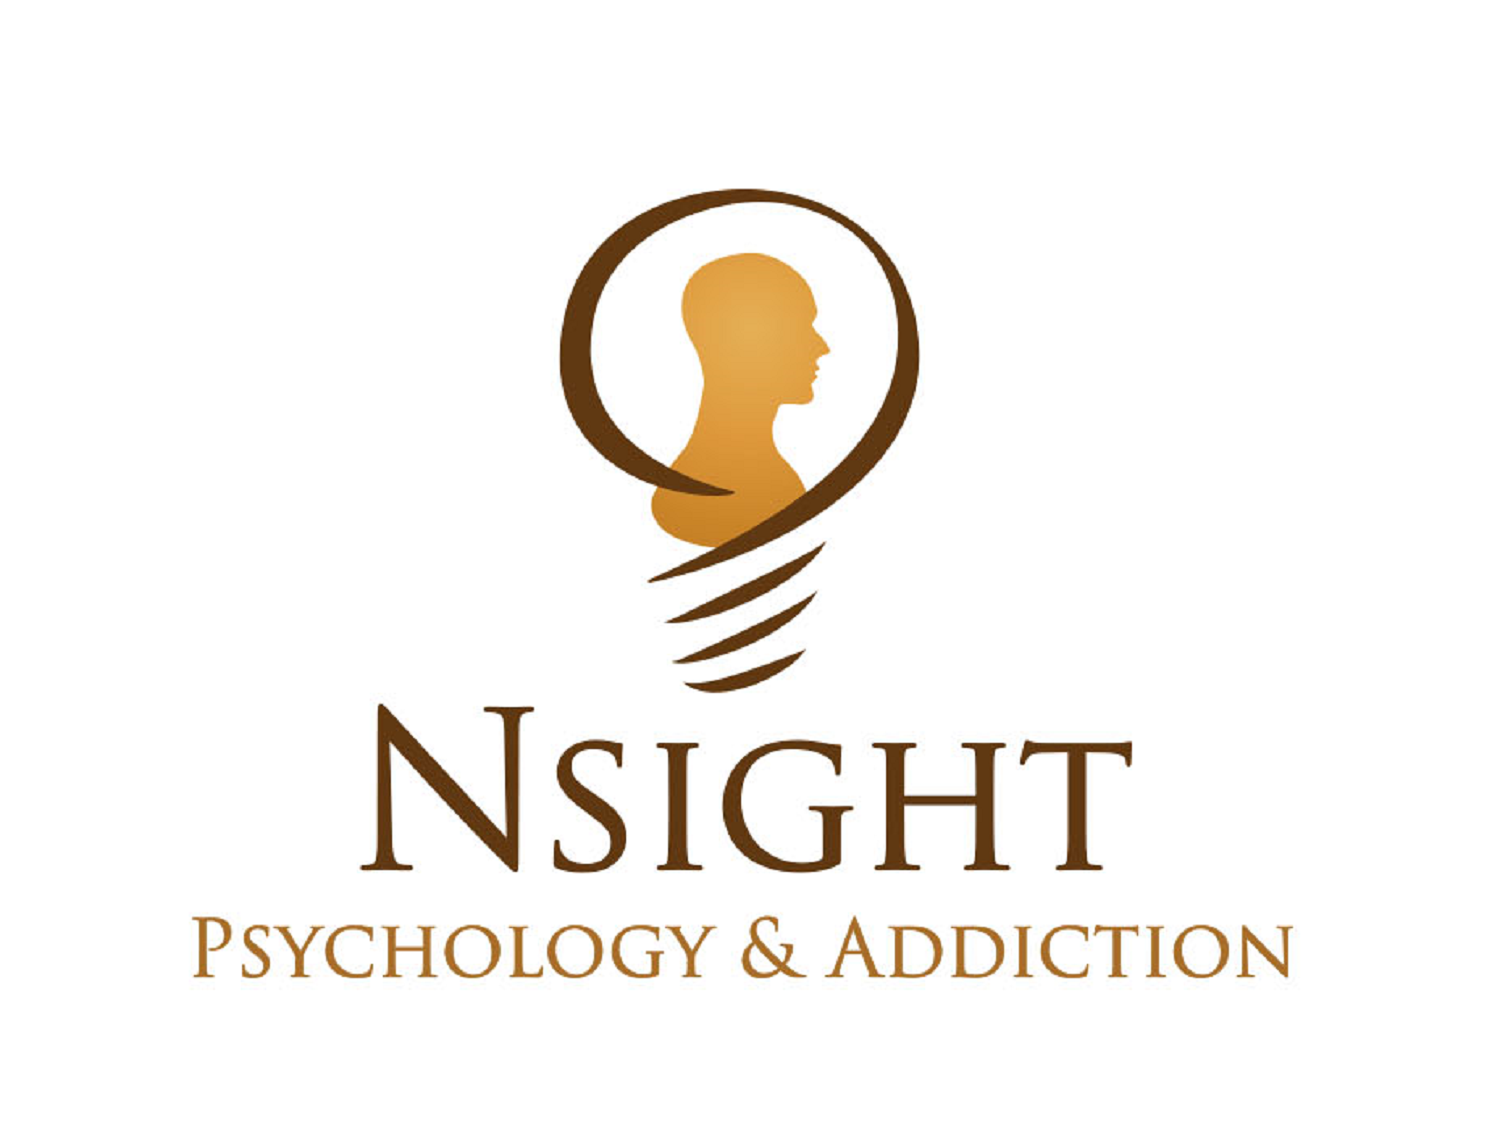 Nsight Psychology & Addiction